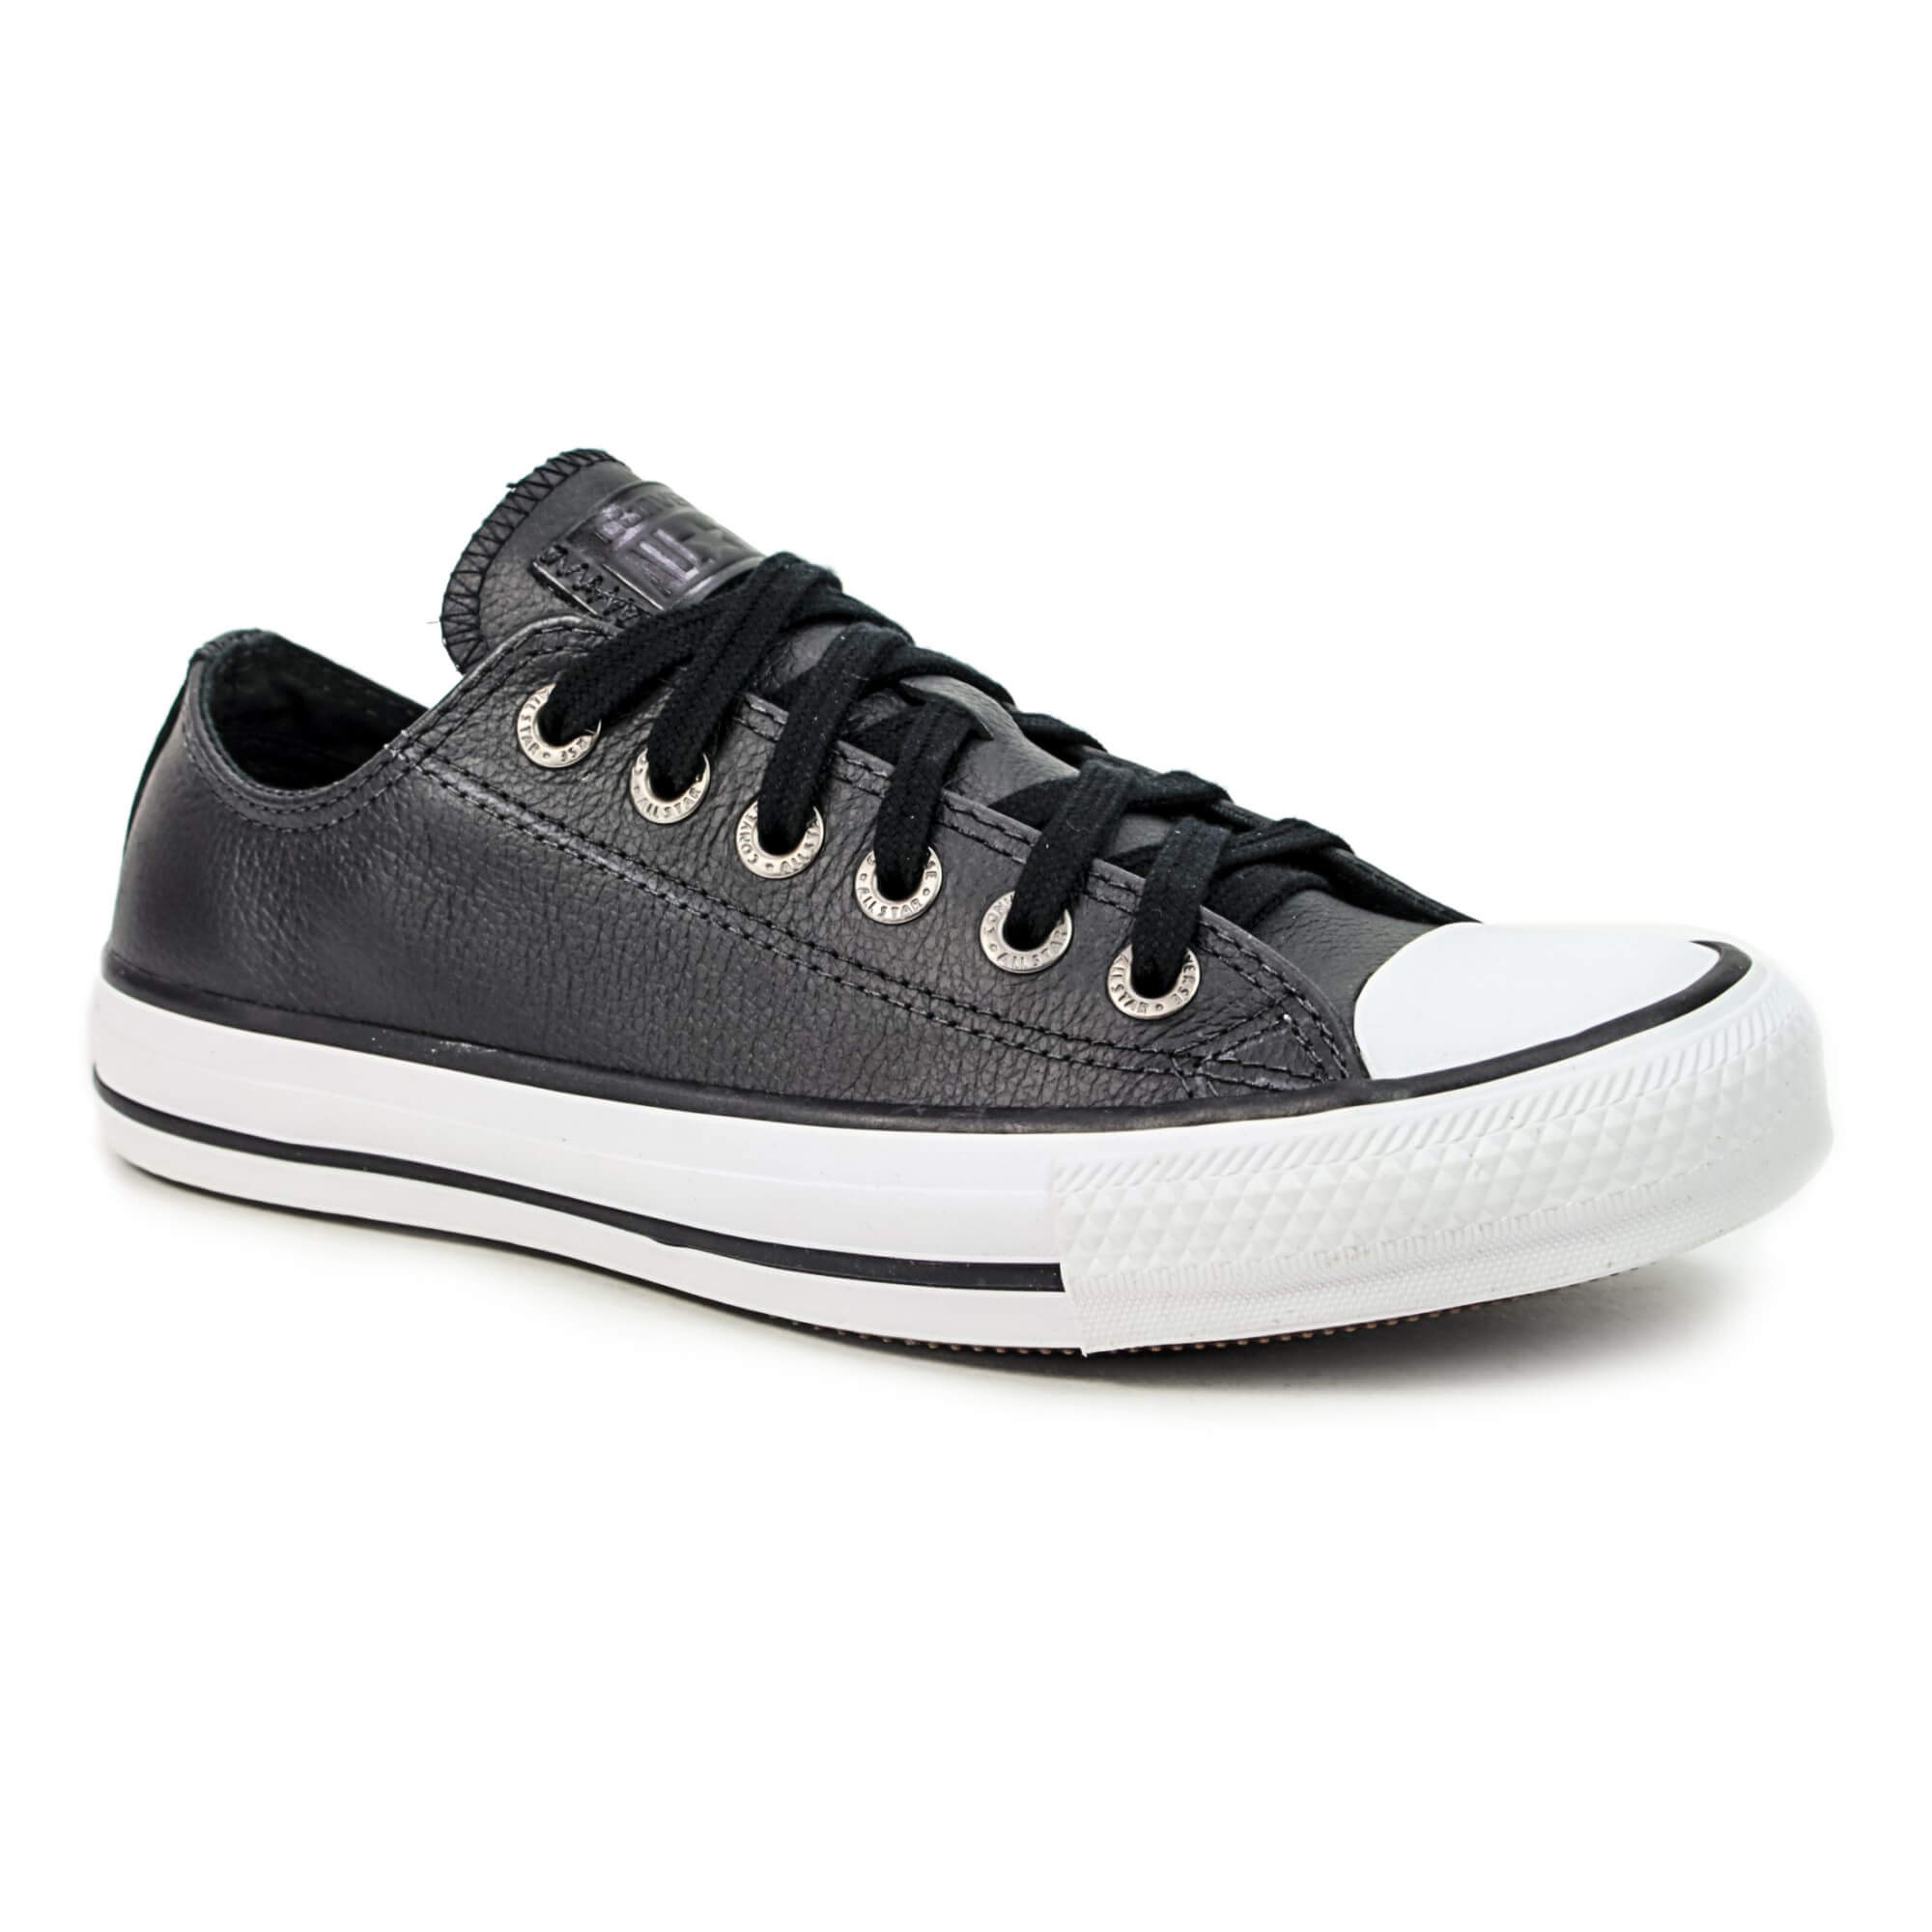 603cda7034f Tênis Converse All Star Unissex